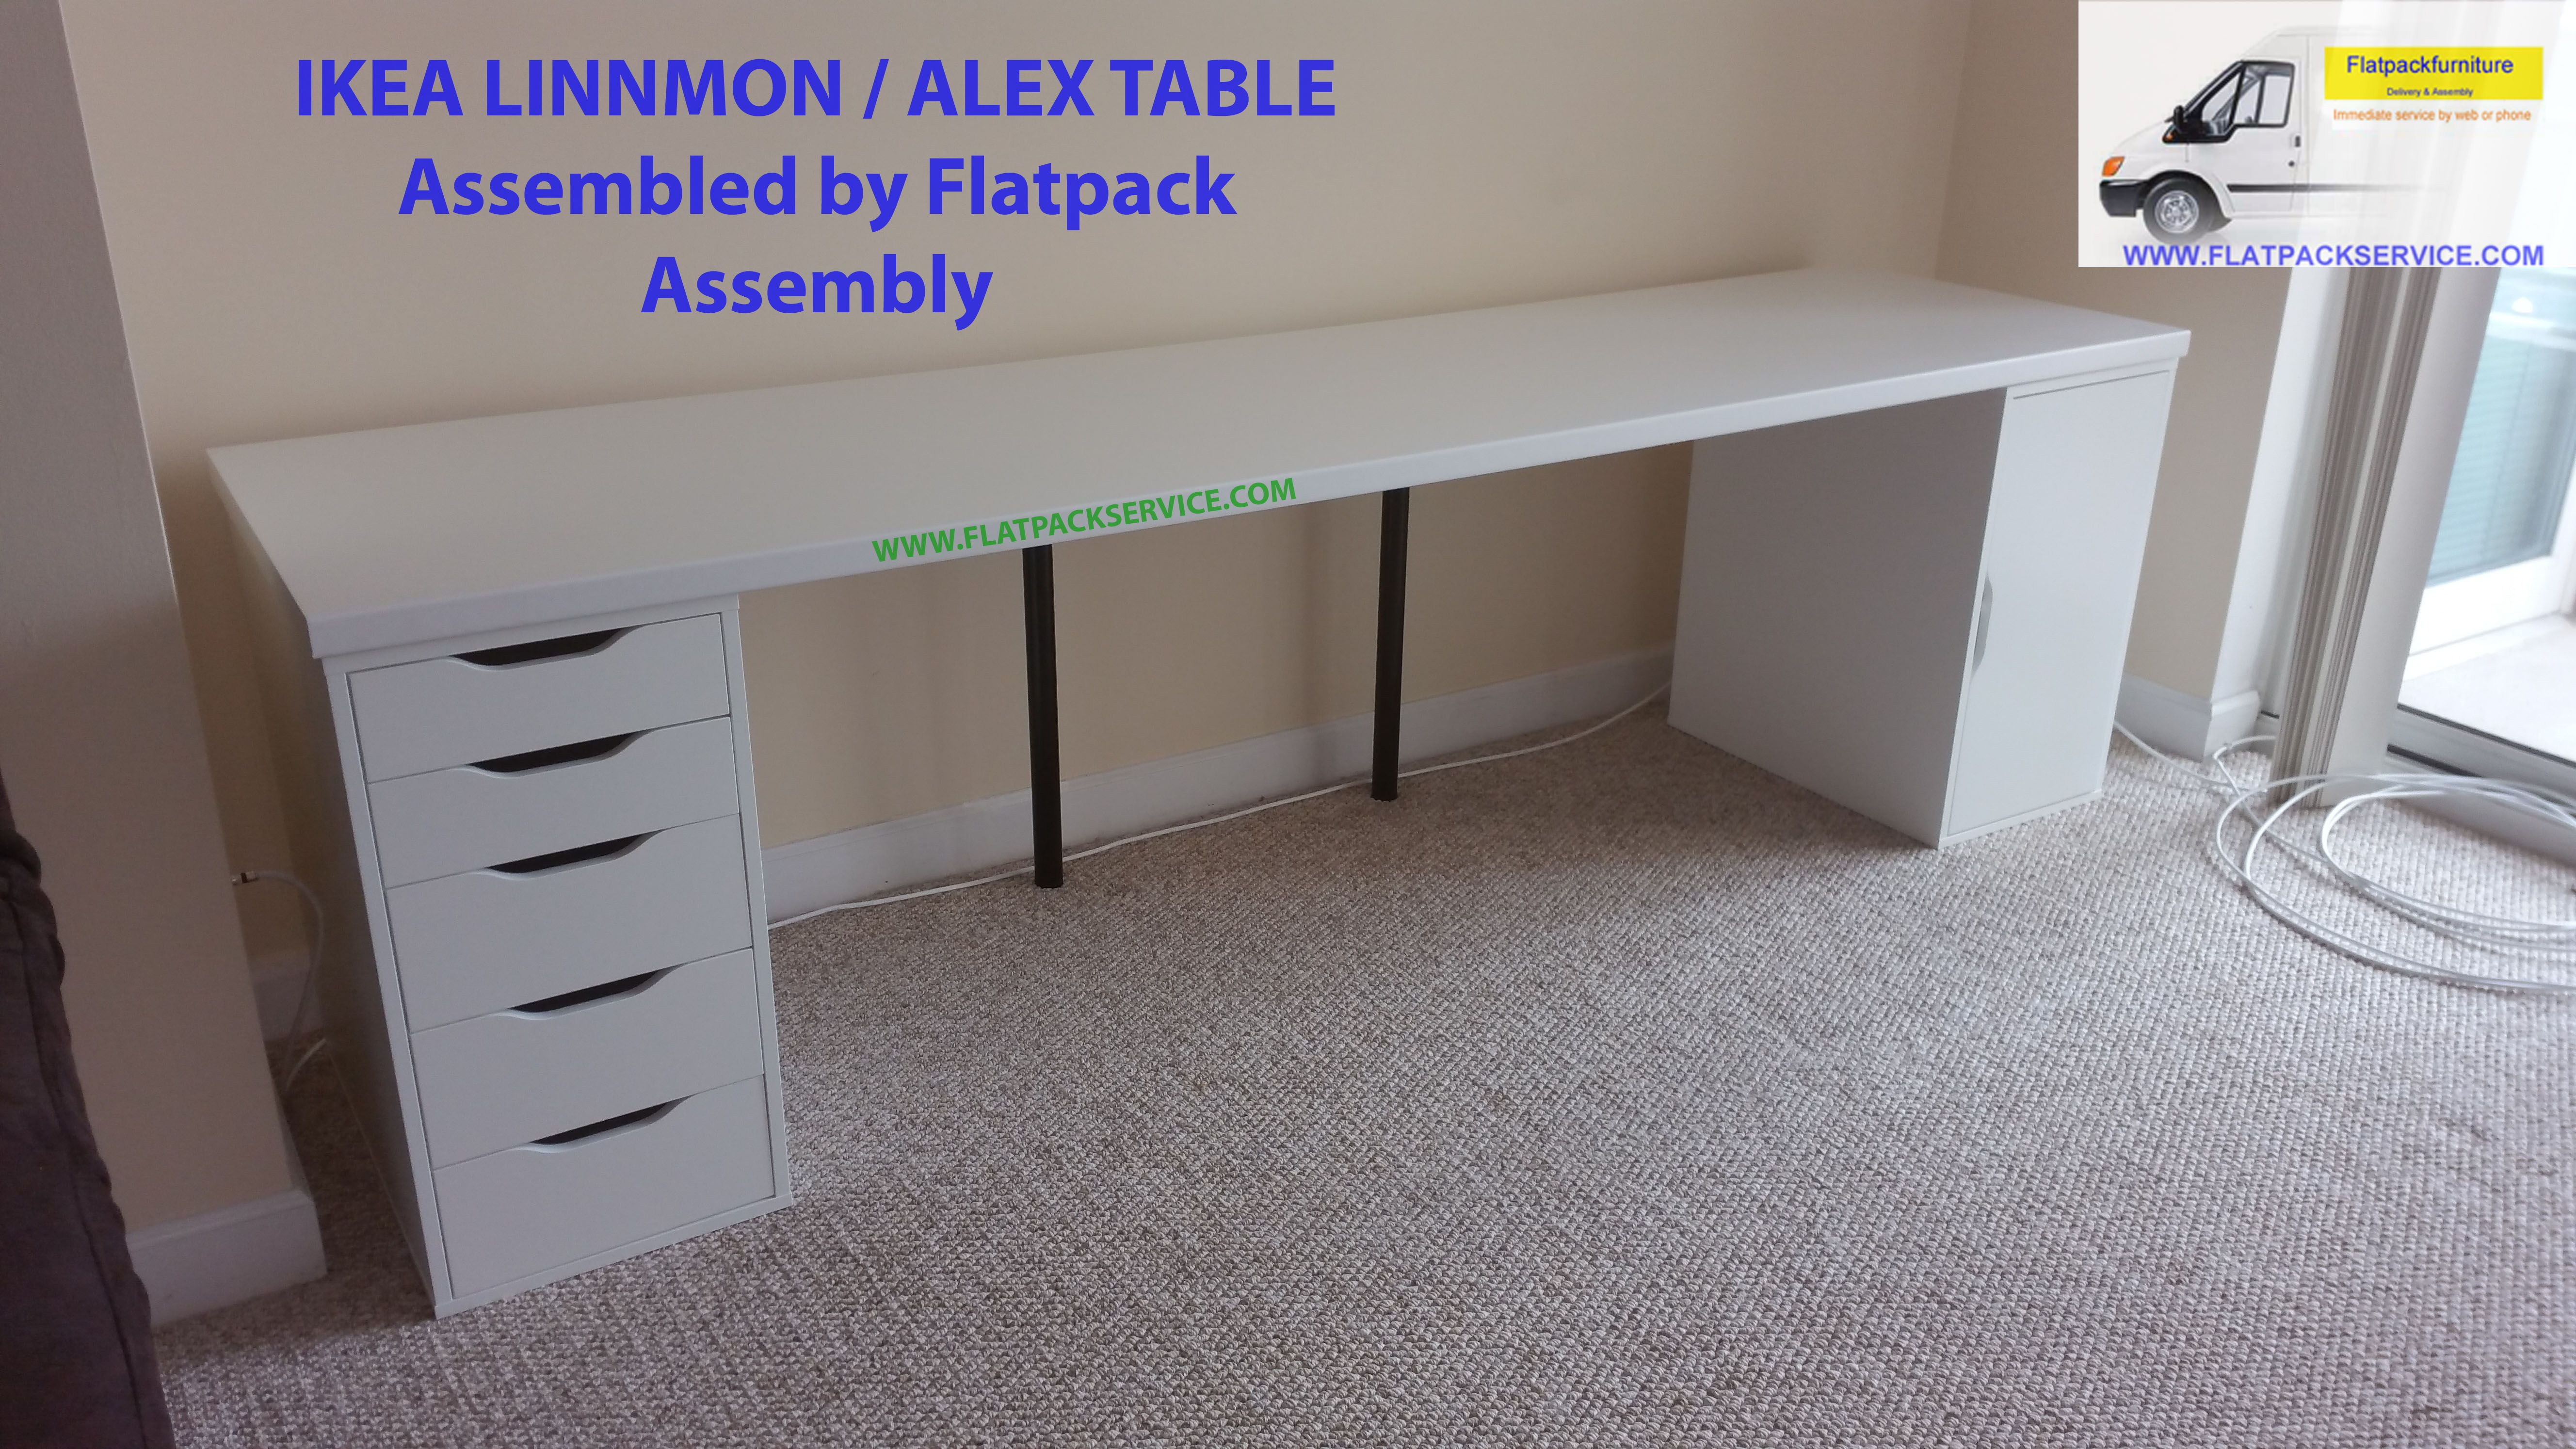 Ikea Linnmon Alex Table Article Number 599 326 98 Assembled By